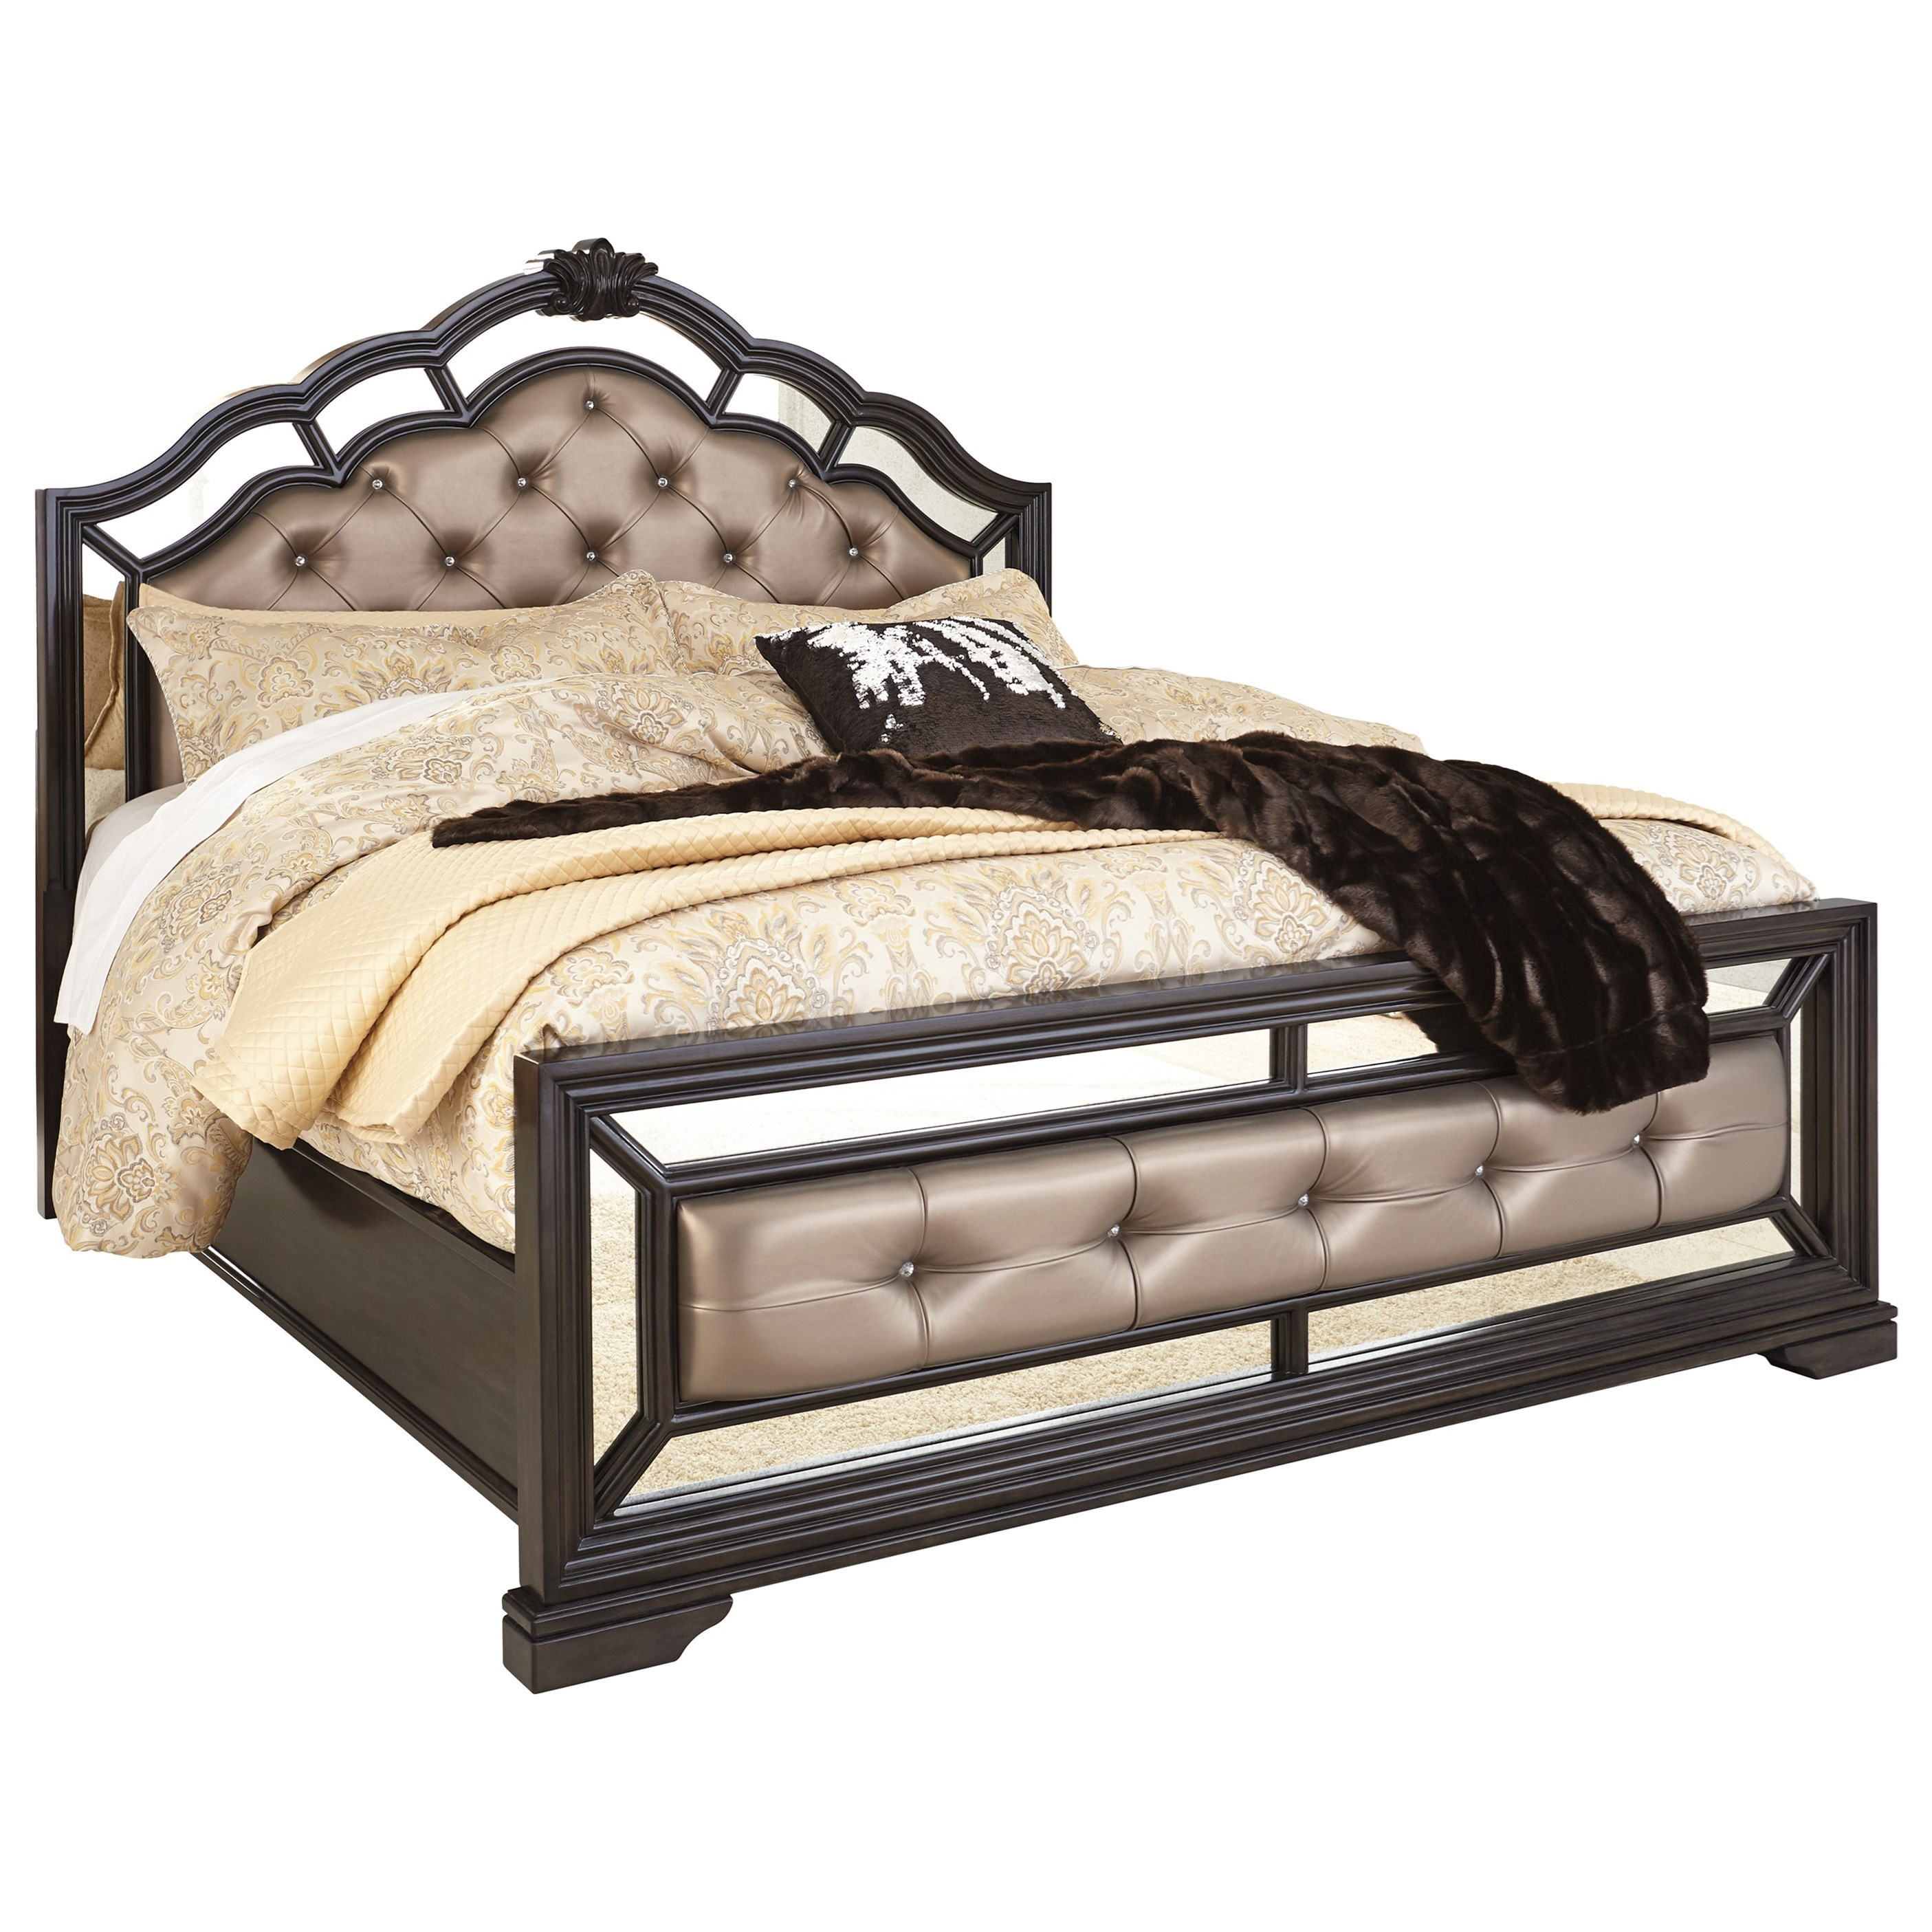 Signature Design by Ashley Quinshire California King Upholstered Panel Bed - Item Number: B728-58+94+56